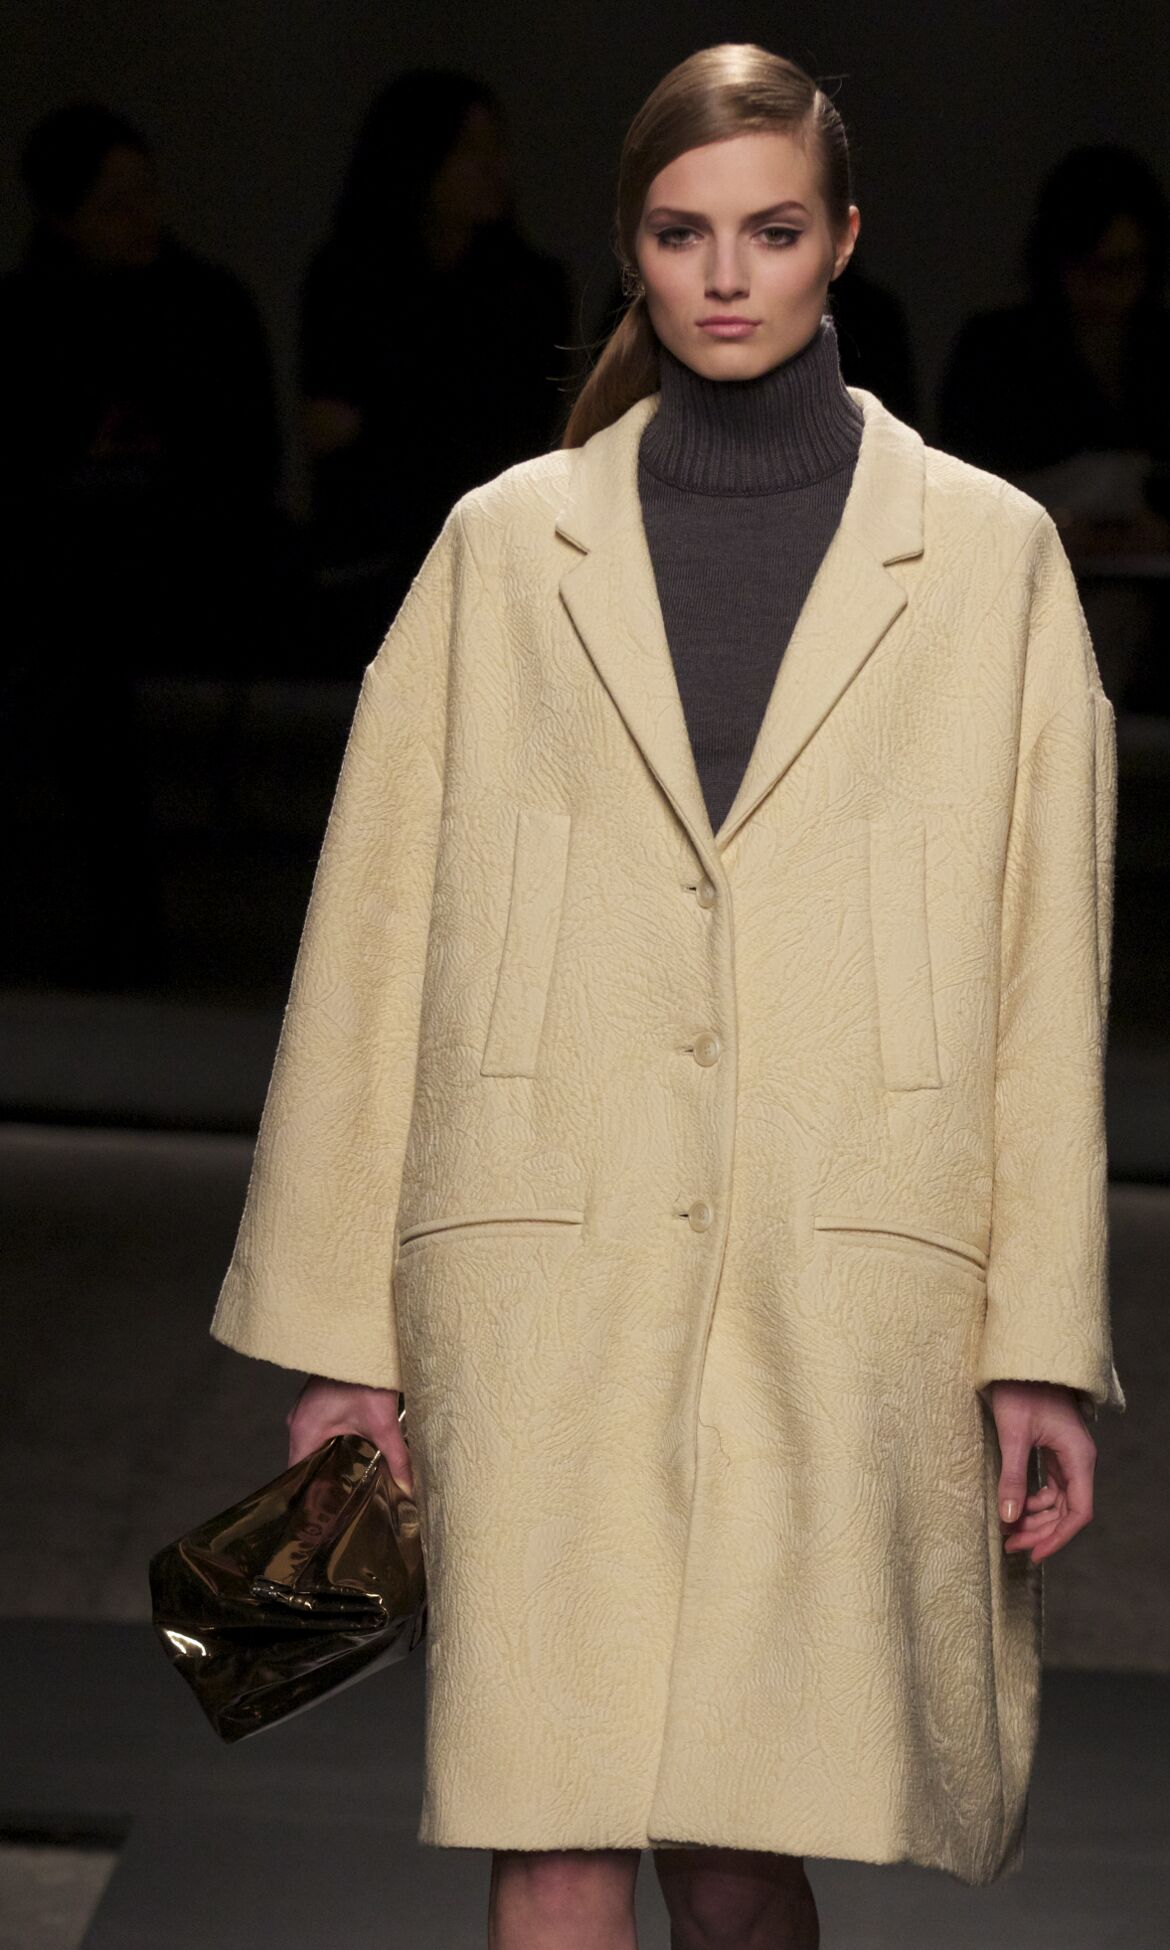 Ports 1961 Women's Collection 2013 2014